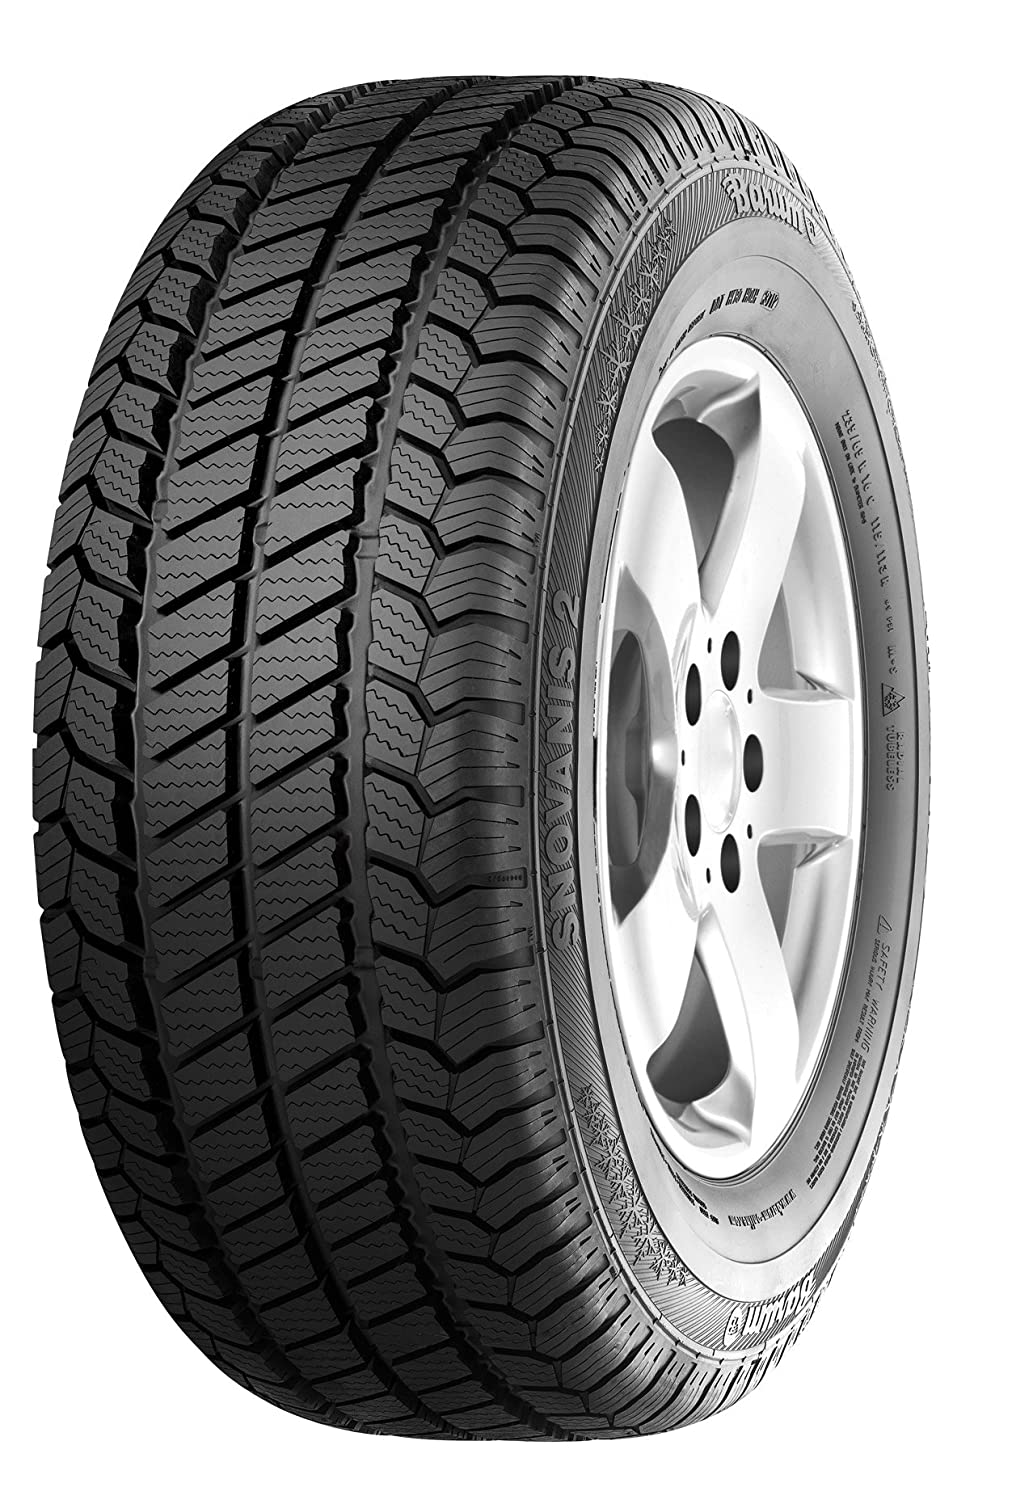 Barum SnoVanis 2 - 205/75 R16 110R - E/C/73 - Winterreifen (4x4 & Transporter) Continental Corporation